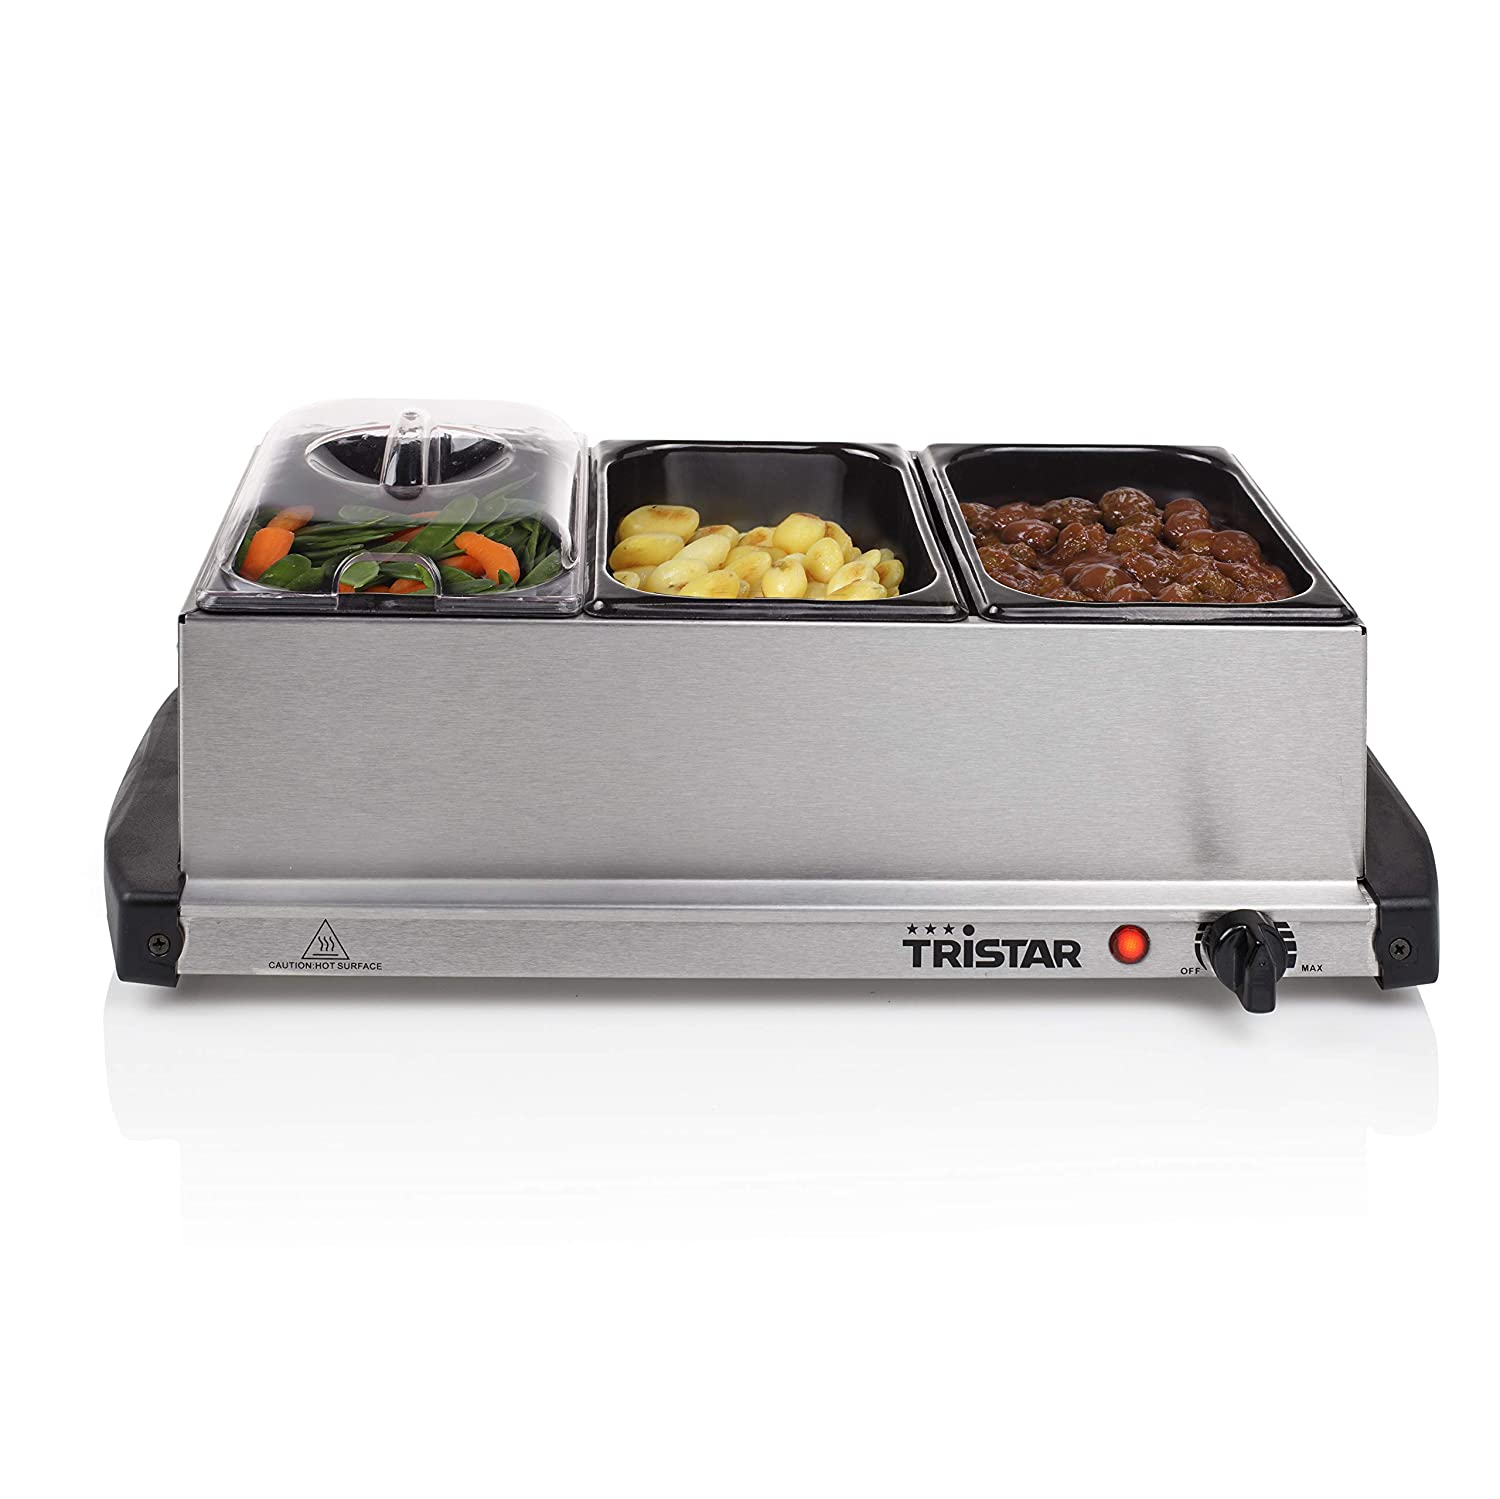 Buffet Warmer and Hotplate - 3 x 1.5lt capacity and Keep Warm Function Tristar BP-2979